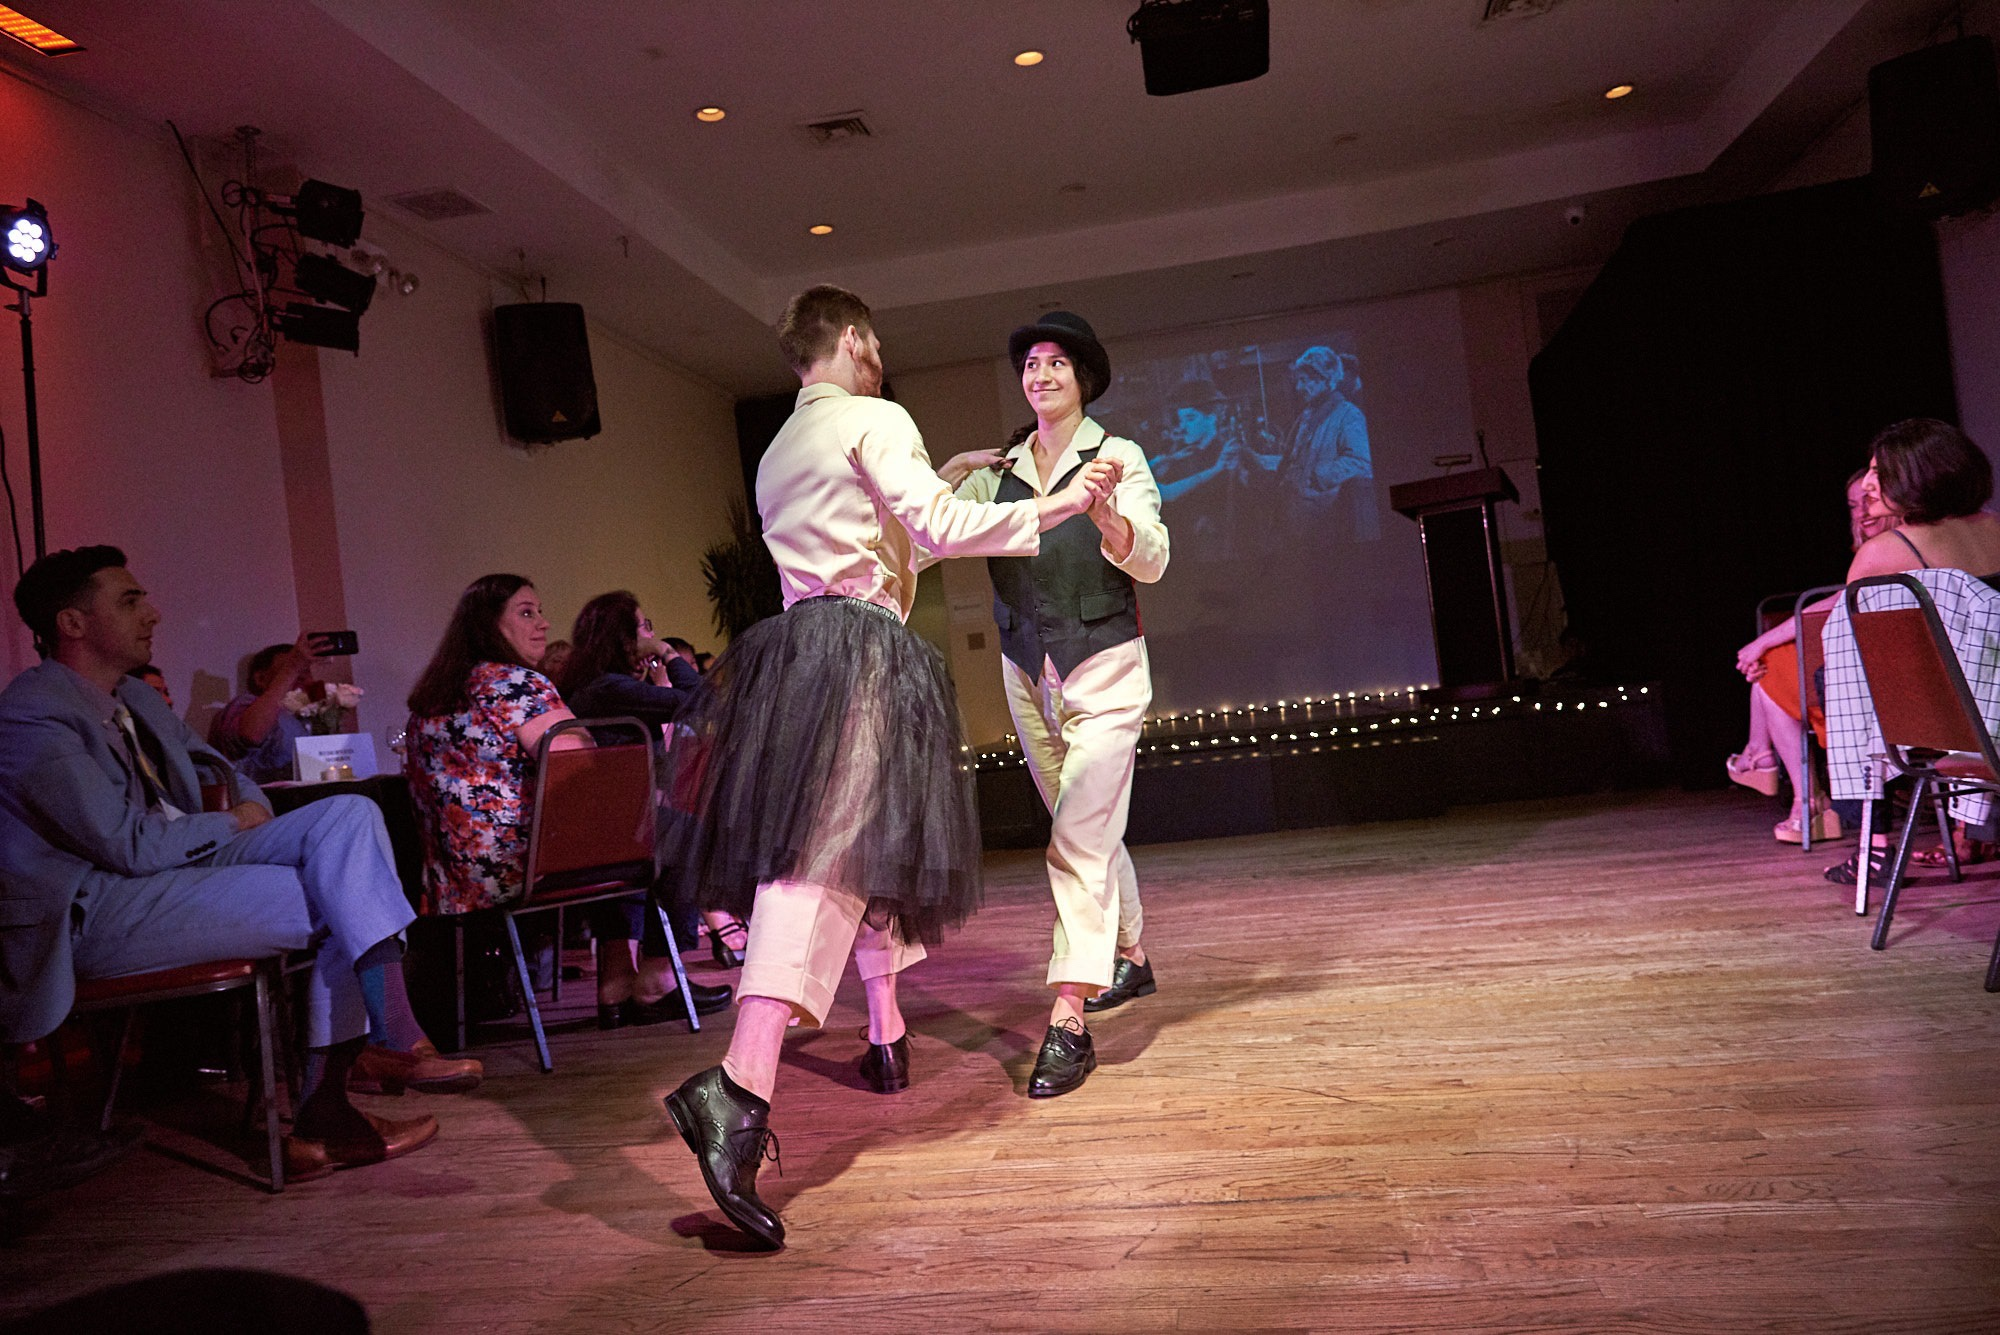 Peter Farrow and Tiffany Ogburn in my work Gold Rush for Live Source Theater Gala